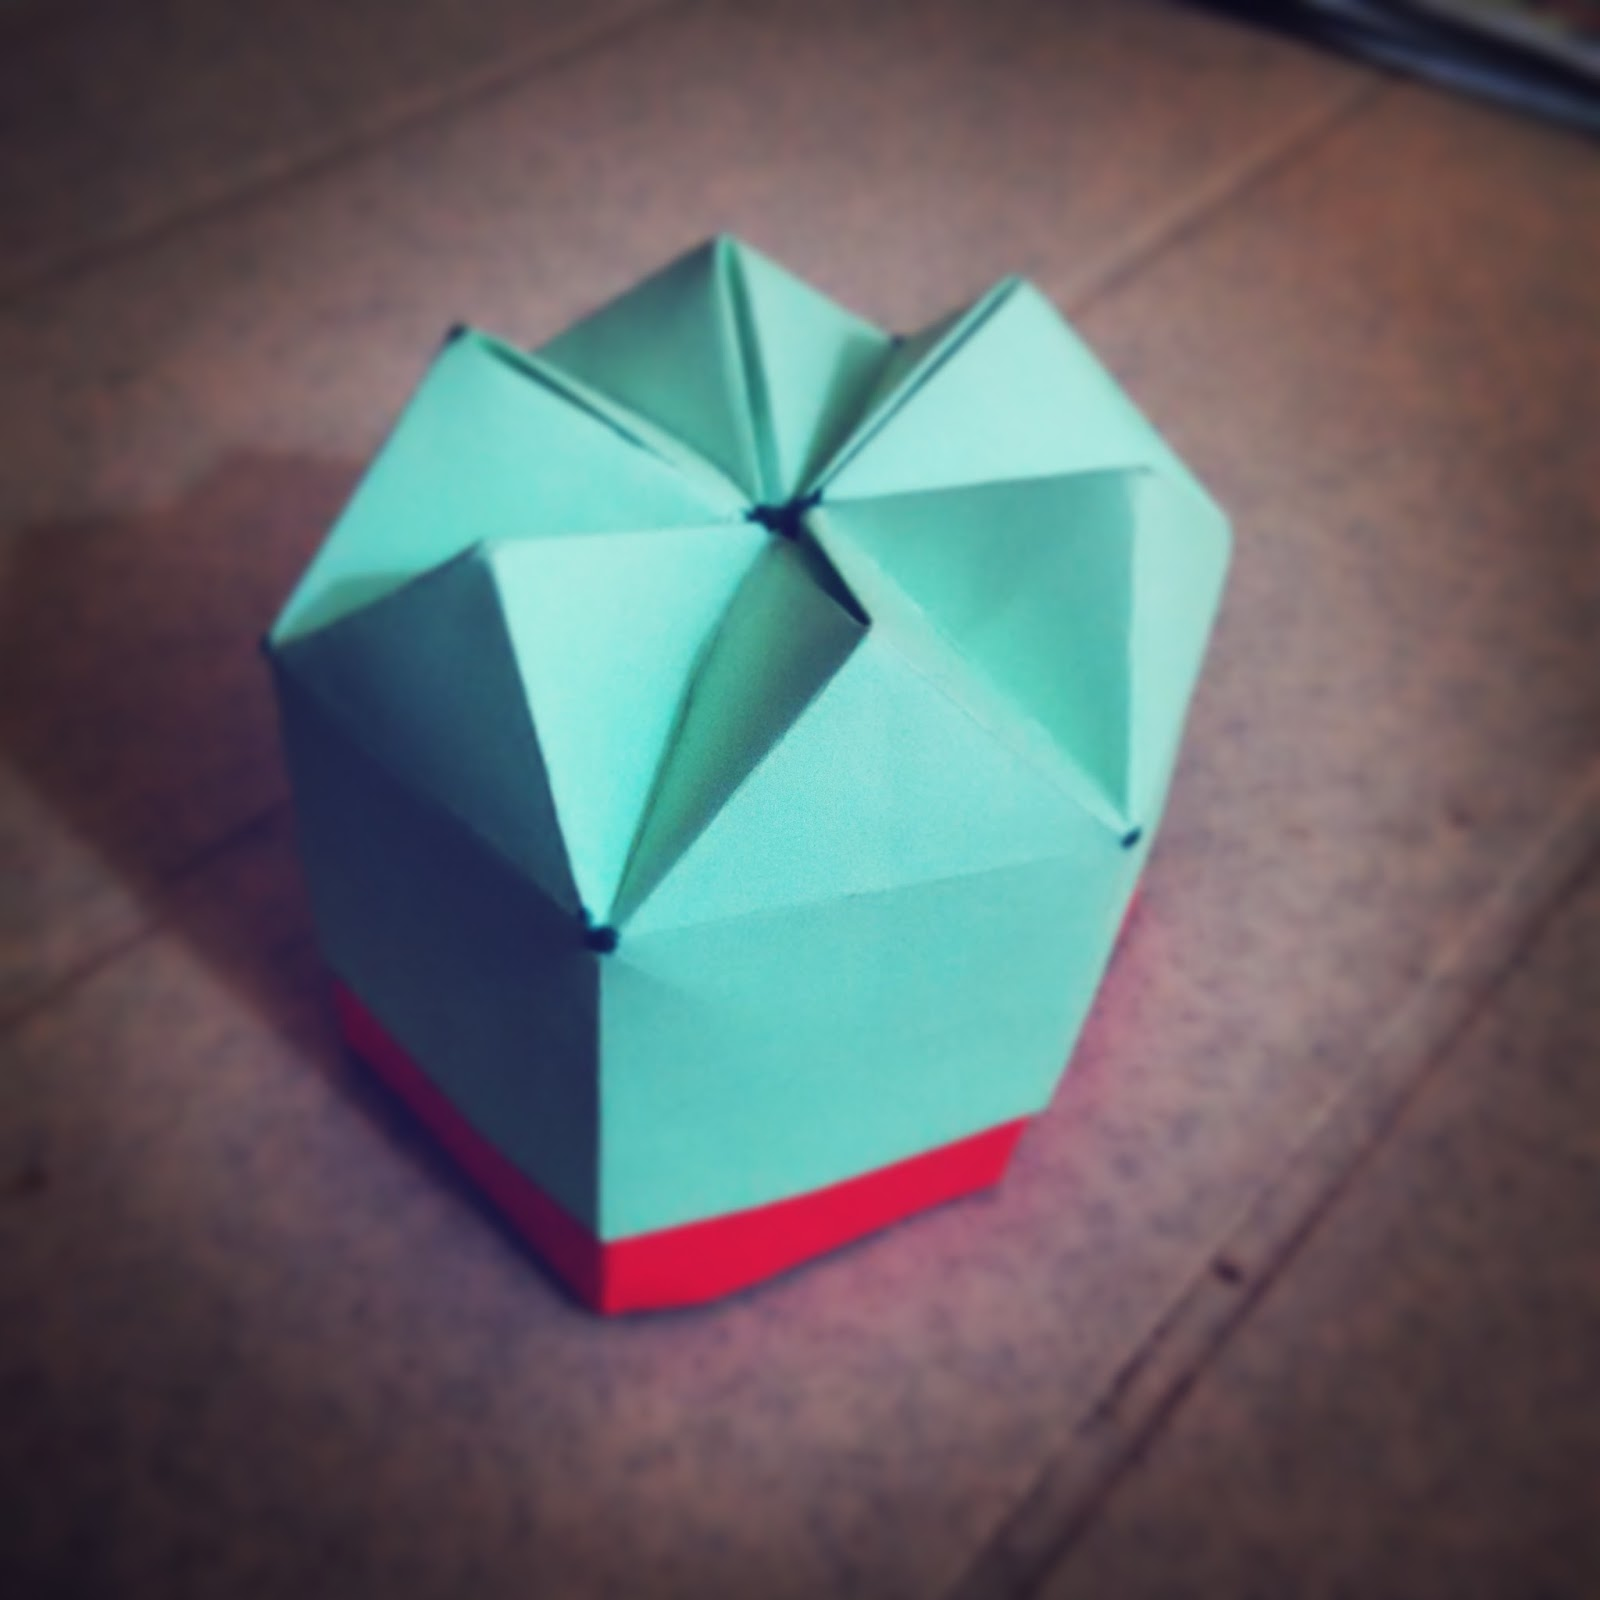 medium resolution of  hexagon gift box tomoko fuse try watching this video on www youtube com or enable javascript if it